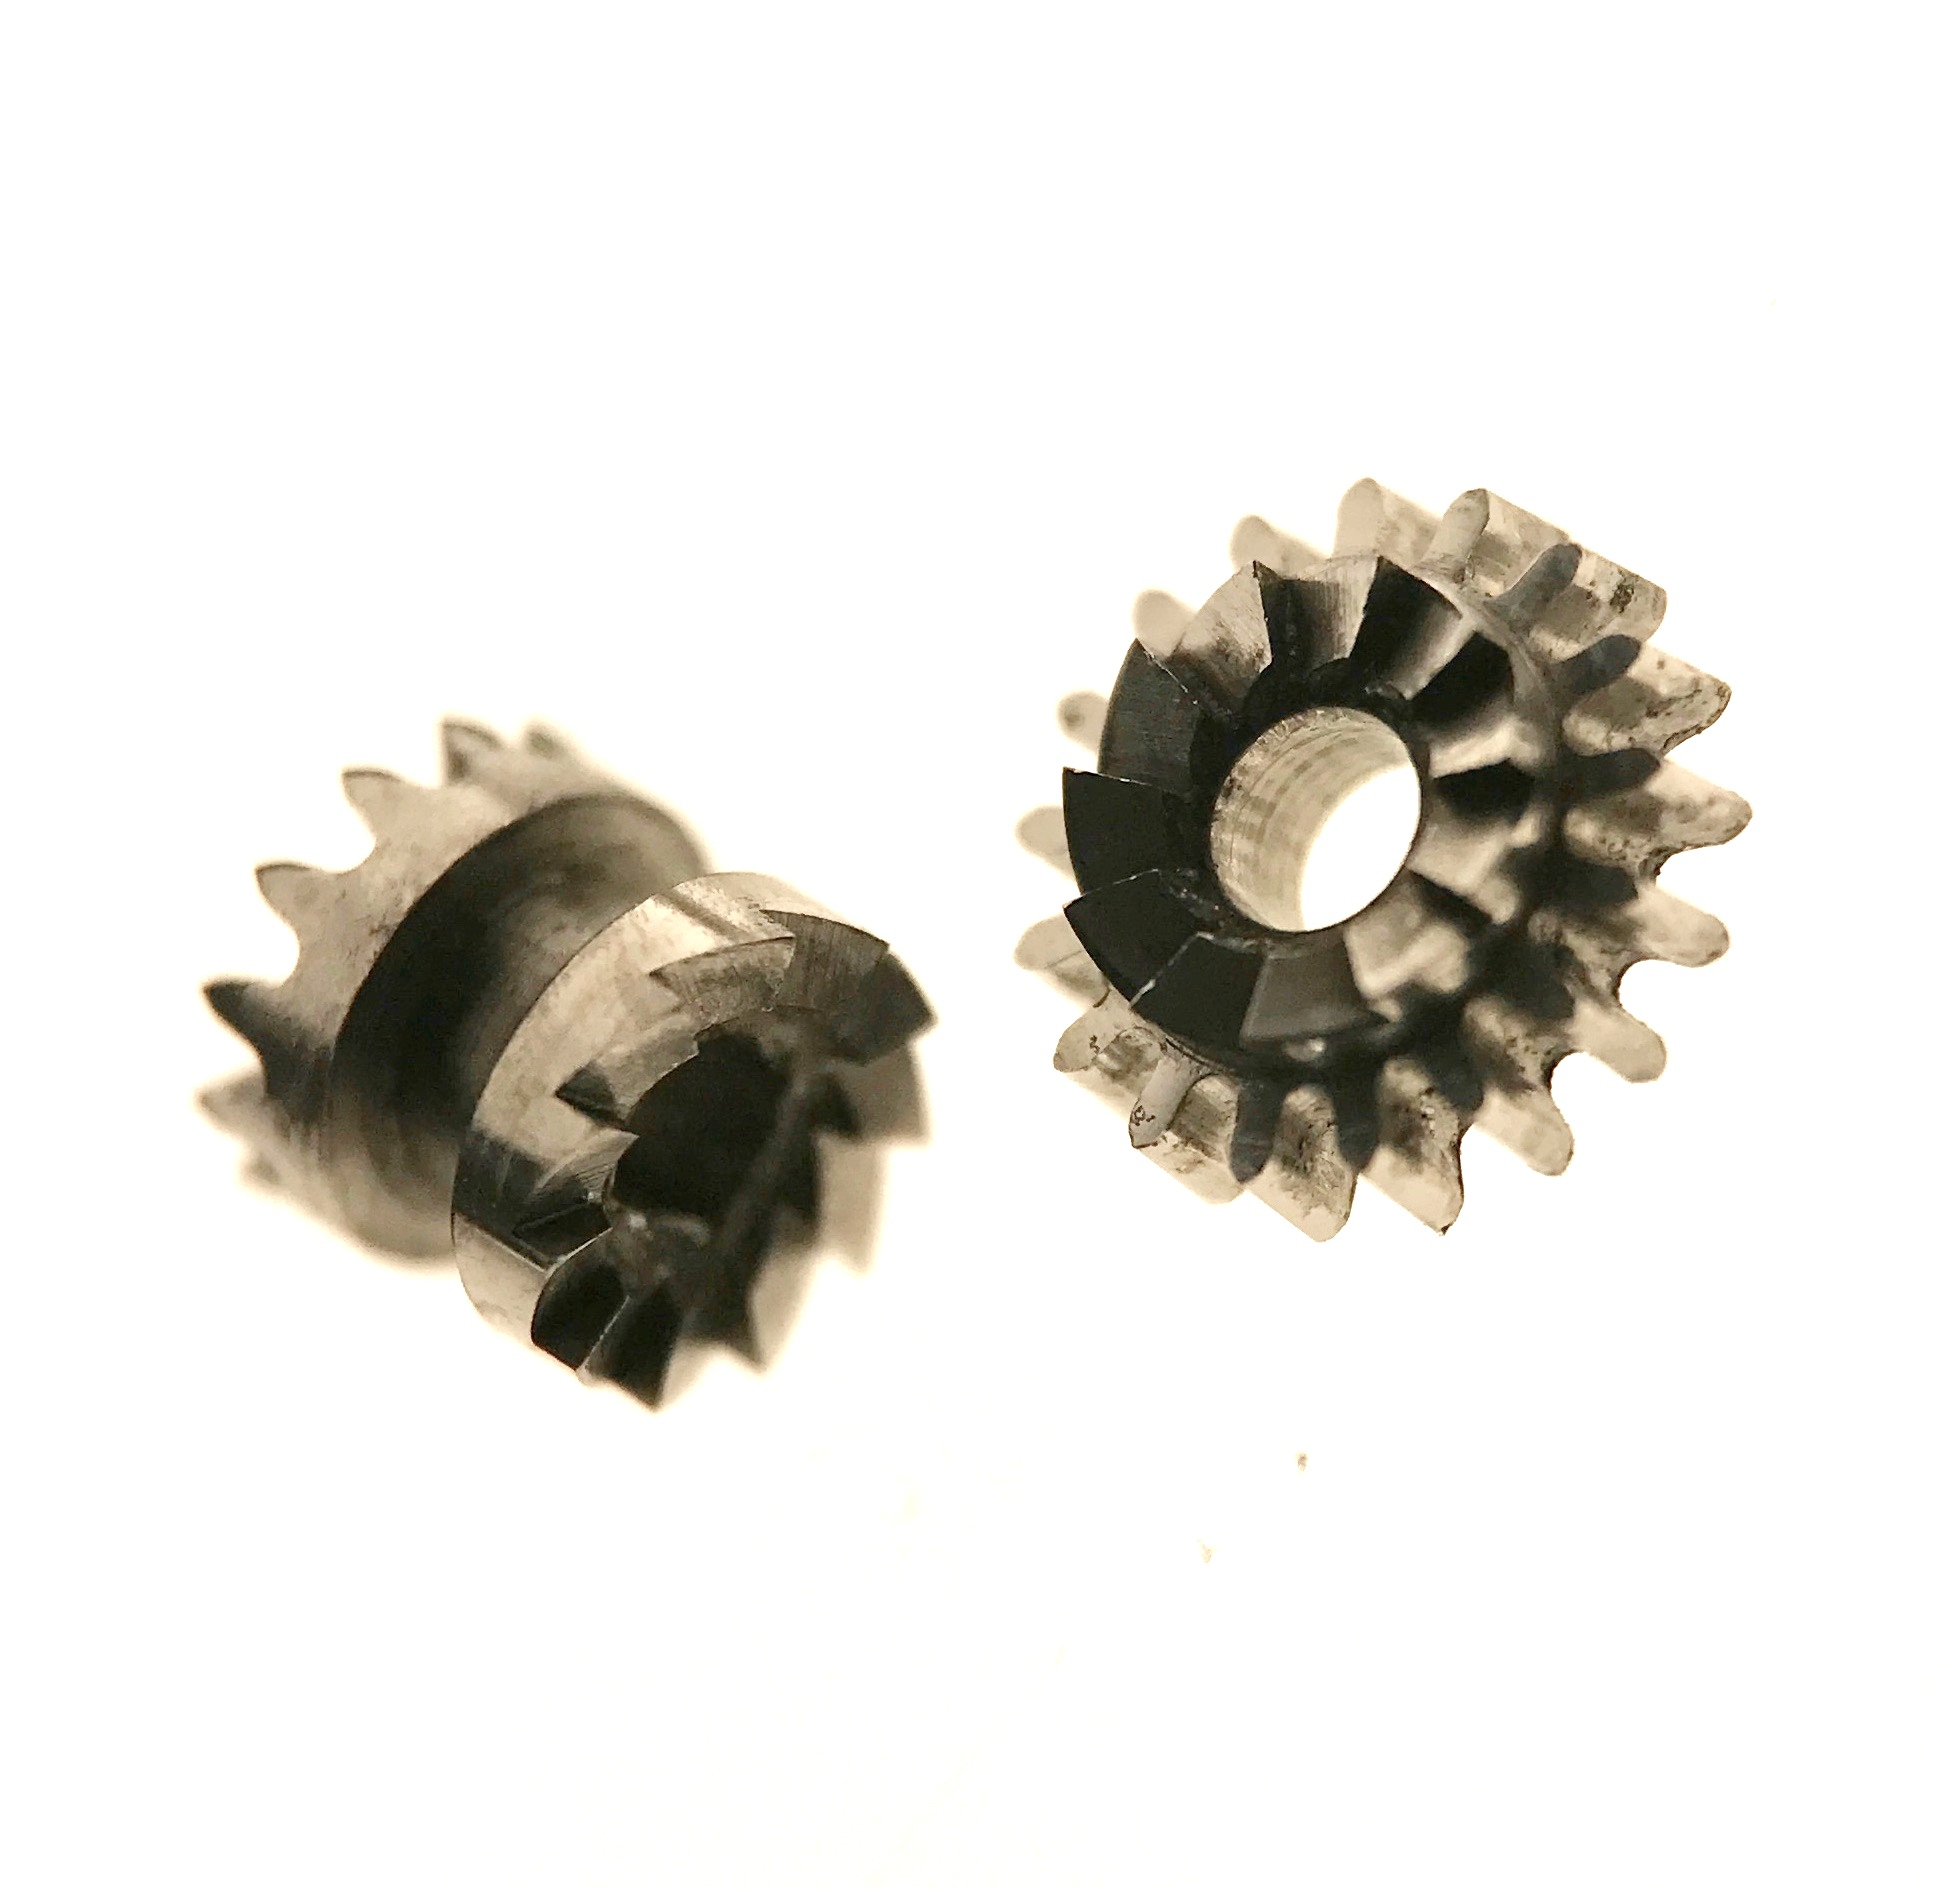 Sliding pinion (left) and winding pinion (right)